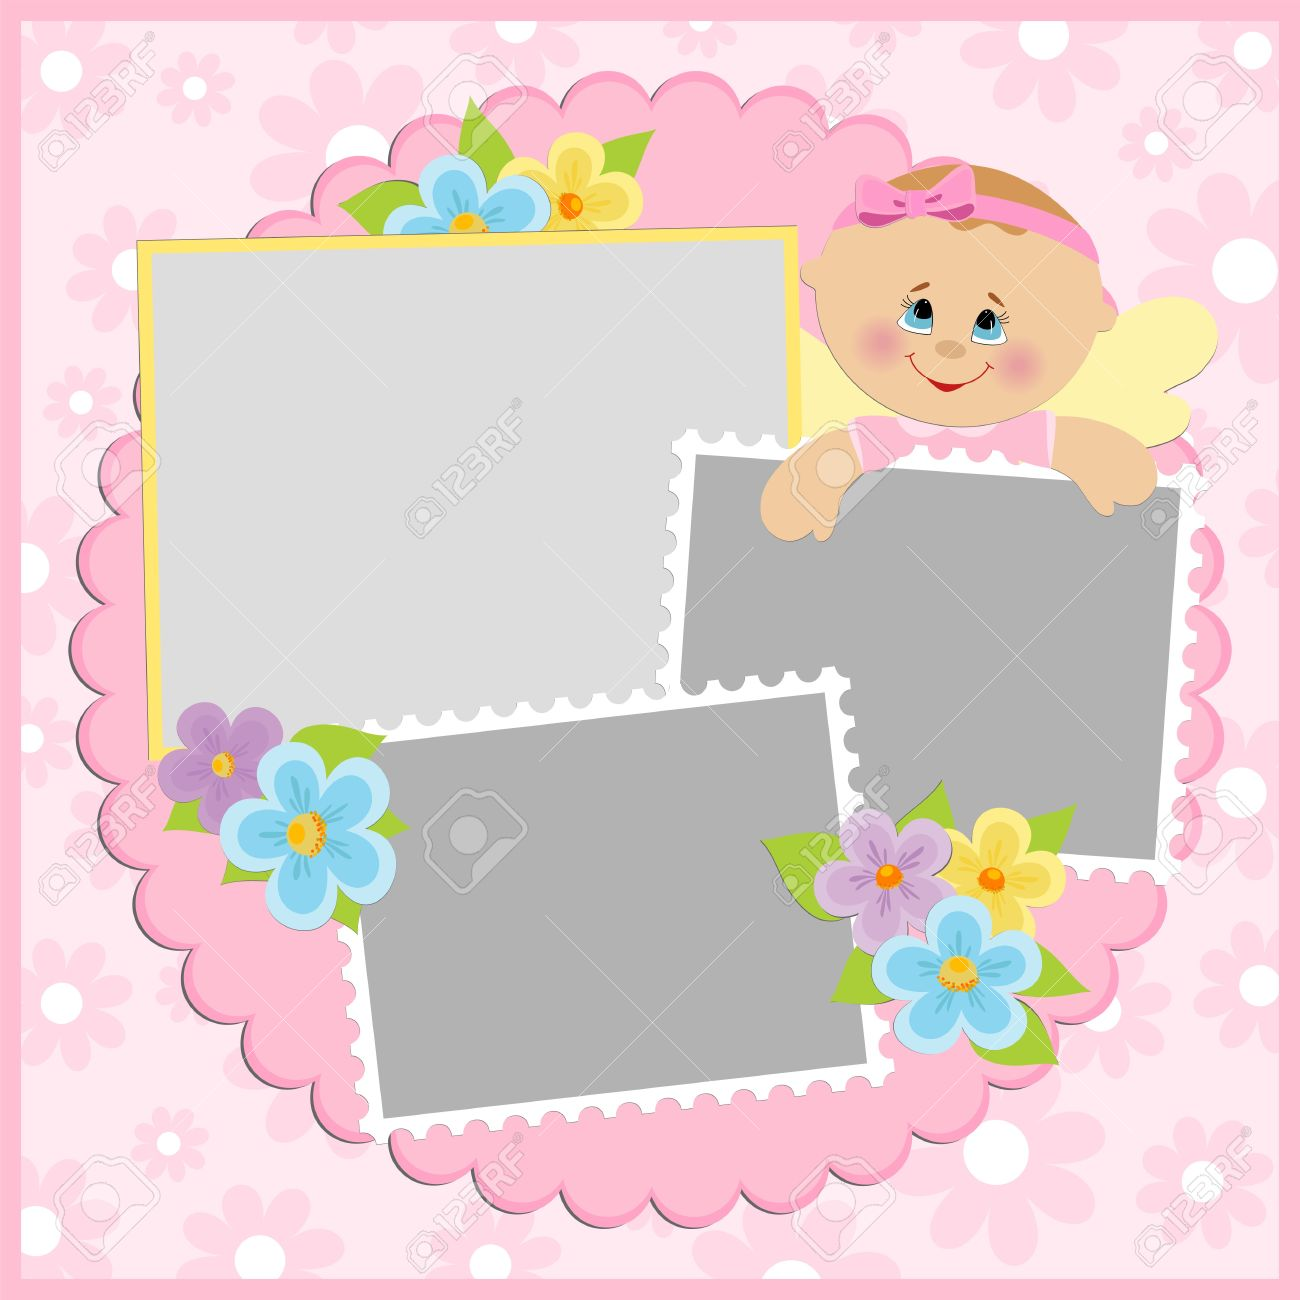 Template for baby's photo album or postcard Stock Vector - 8181411